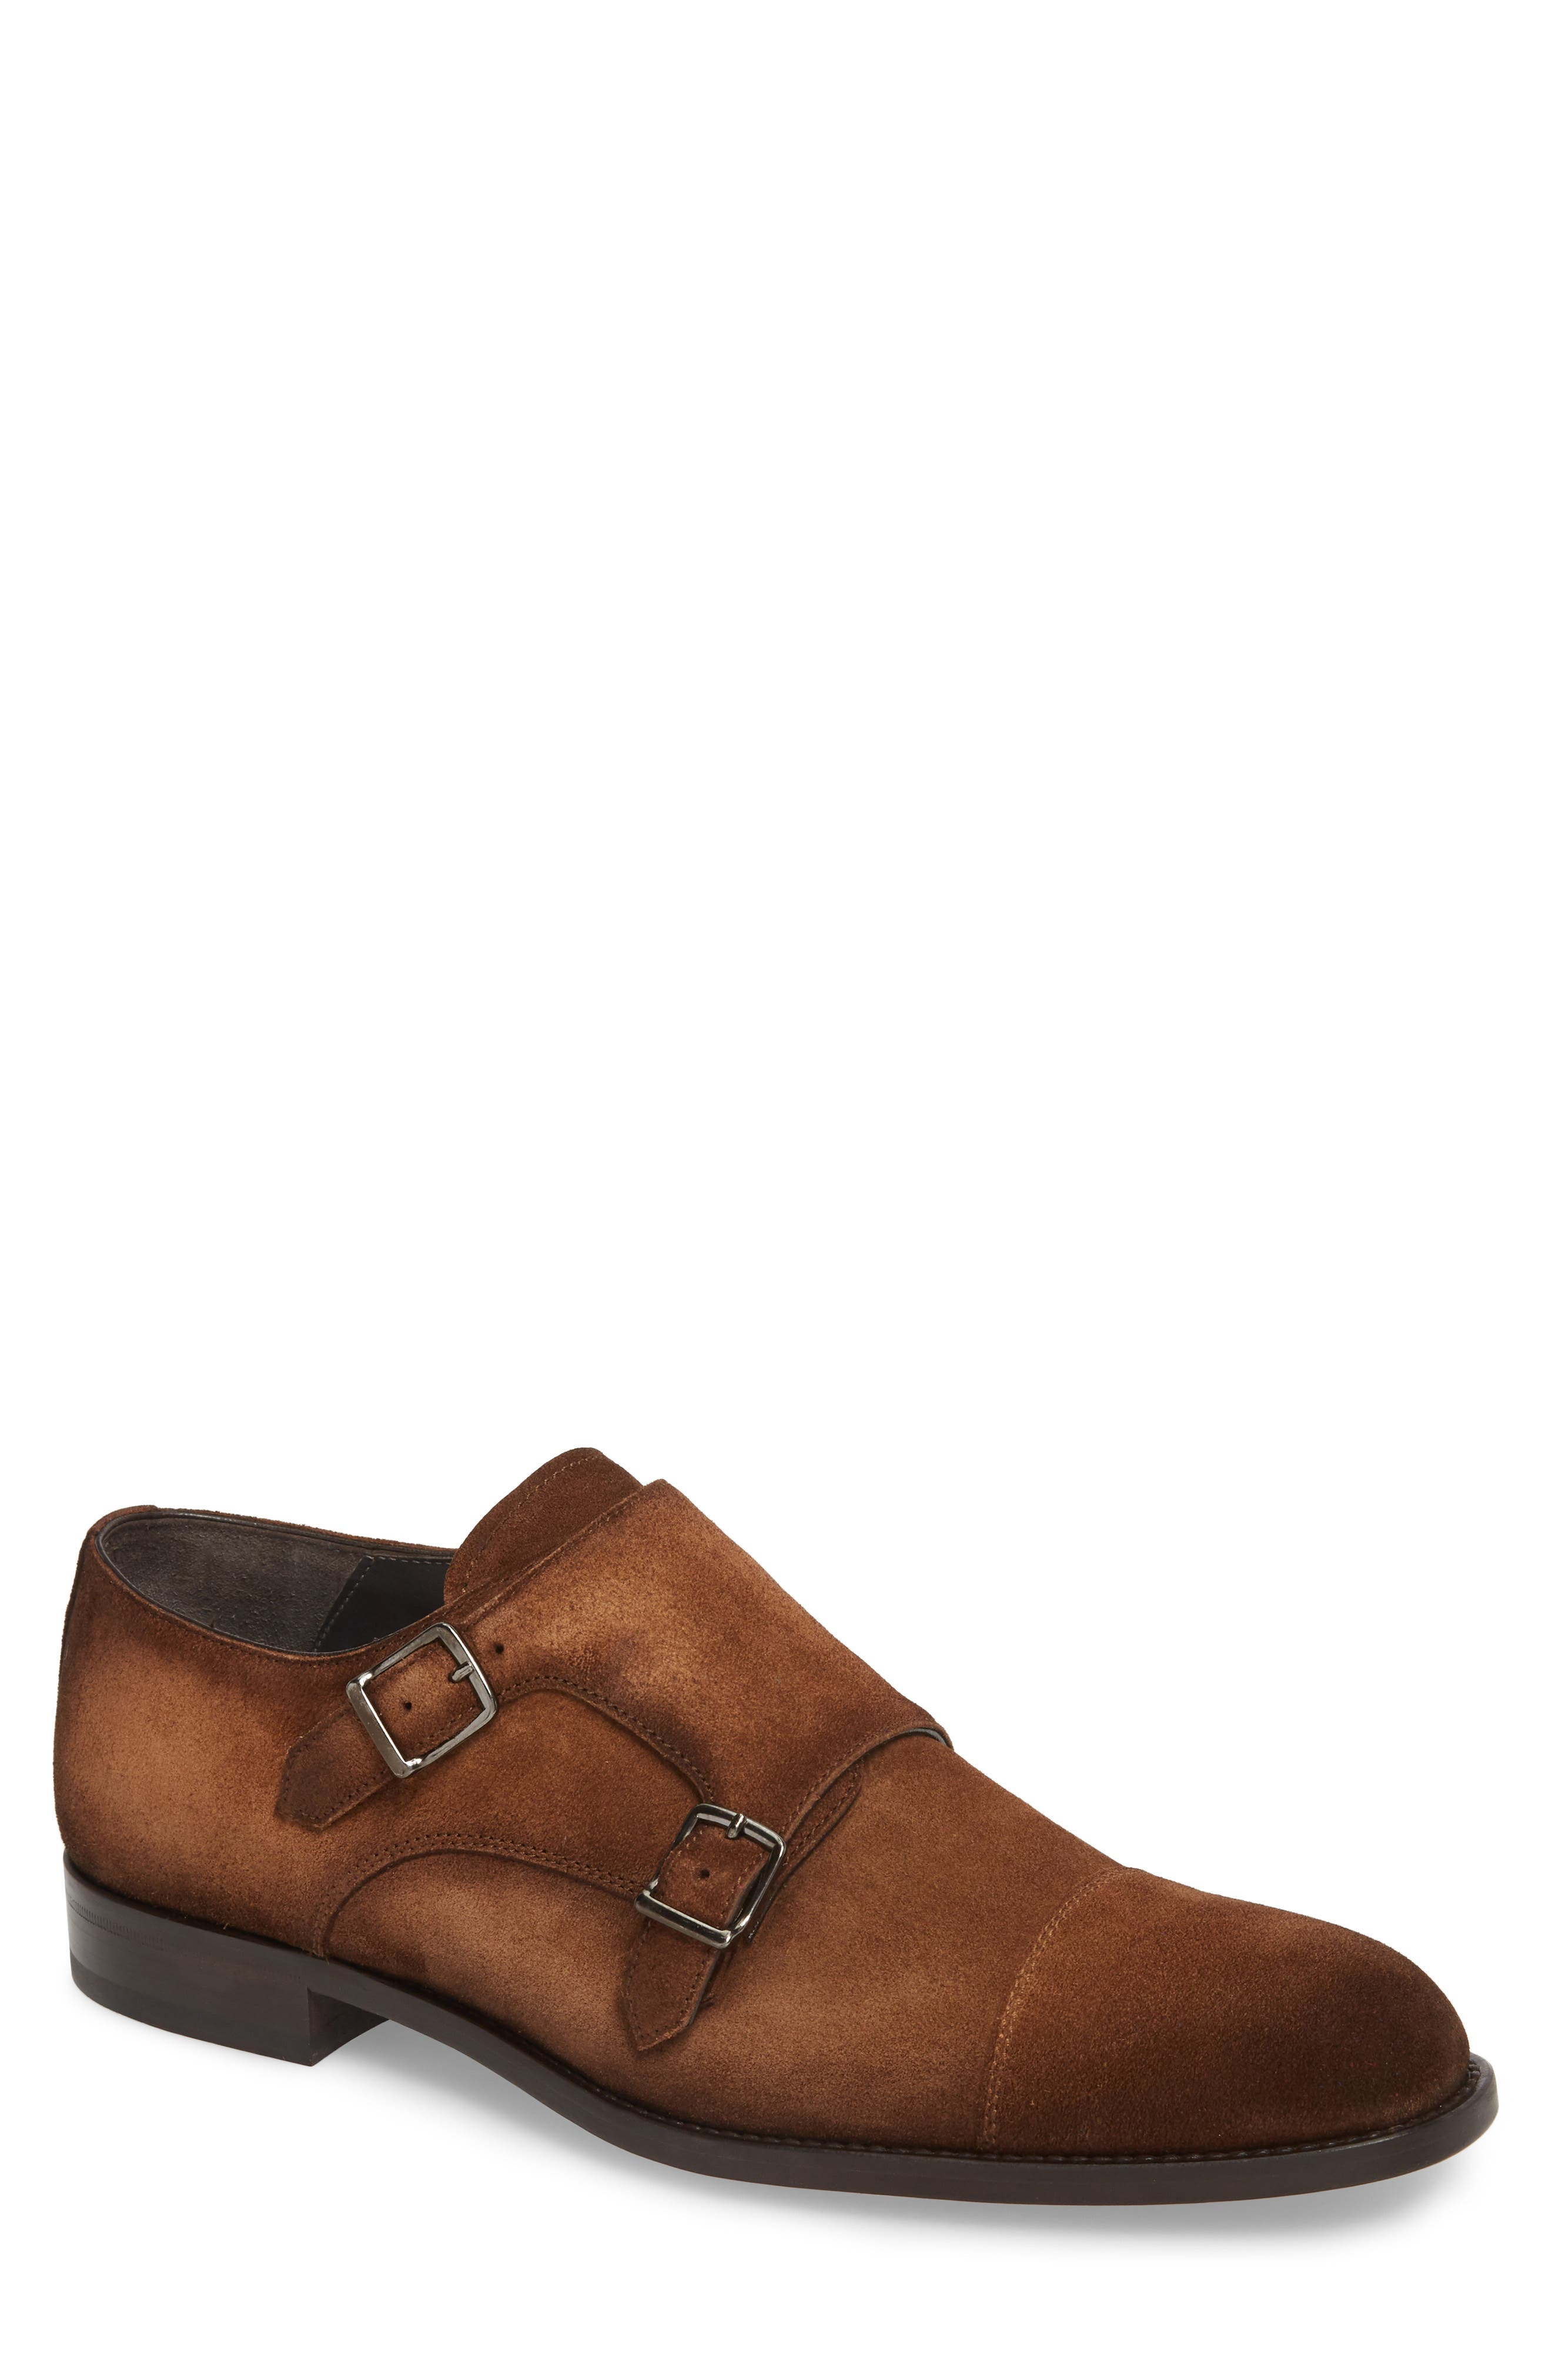 TO BOOT NEW YORK, Quentin Cap Toe Monk Shoe, Main thumbnail 1, color, BROWN SUEDE LEATHER